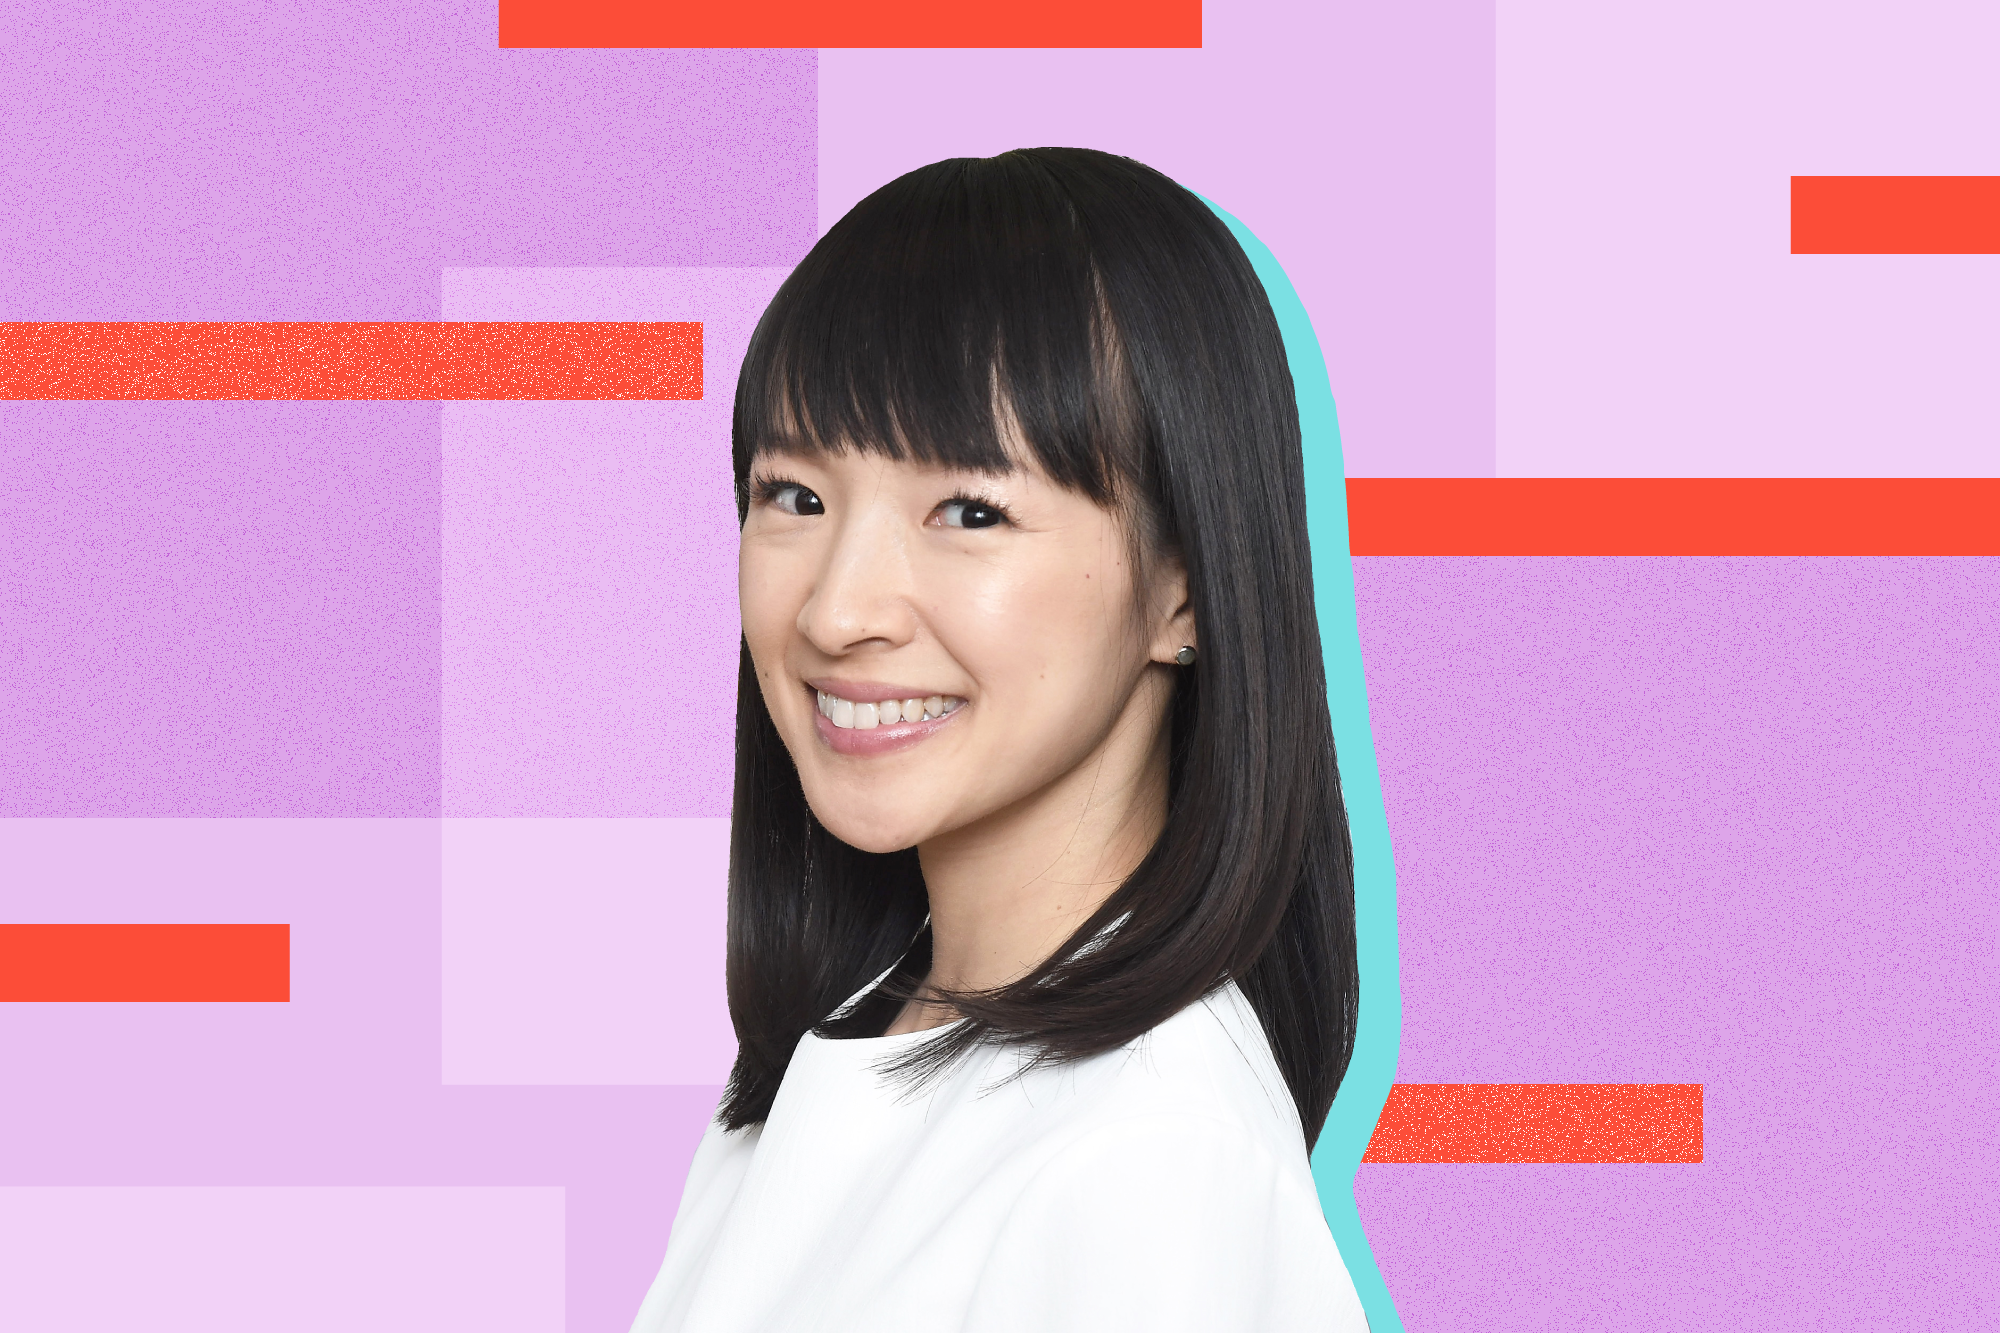 Marie Kondo Just Made A Folding Mistake That's So Relatable